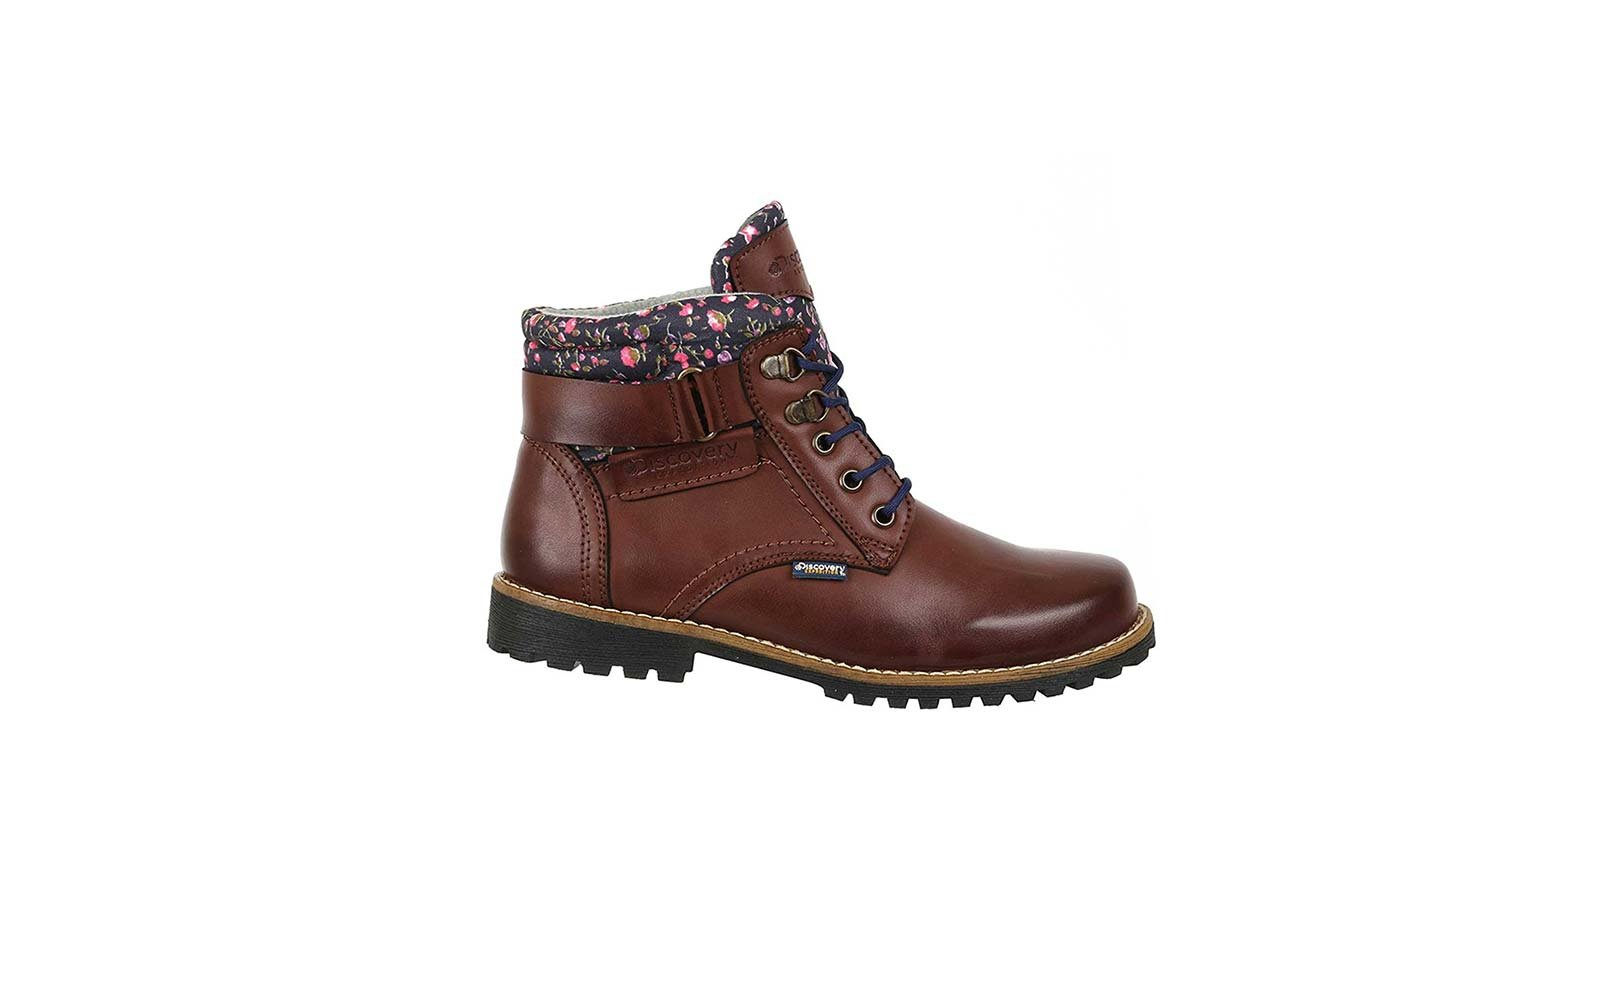 Discovery Expedition Female Hiking Boots